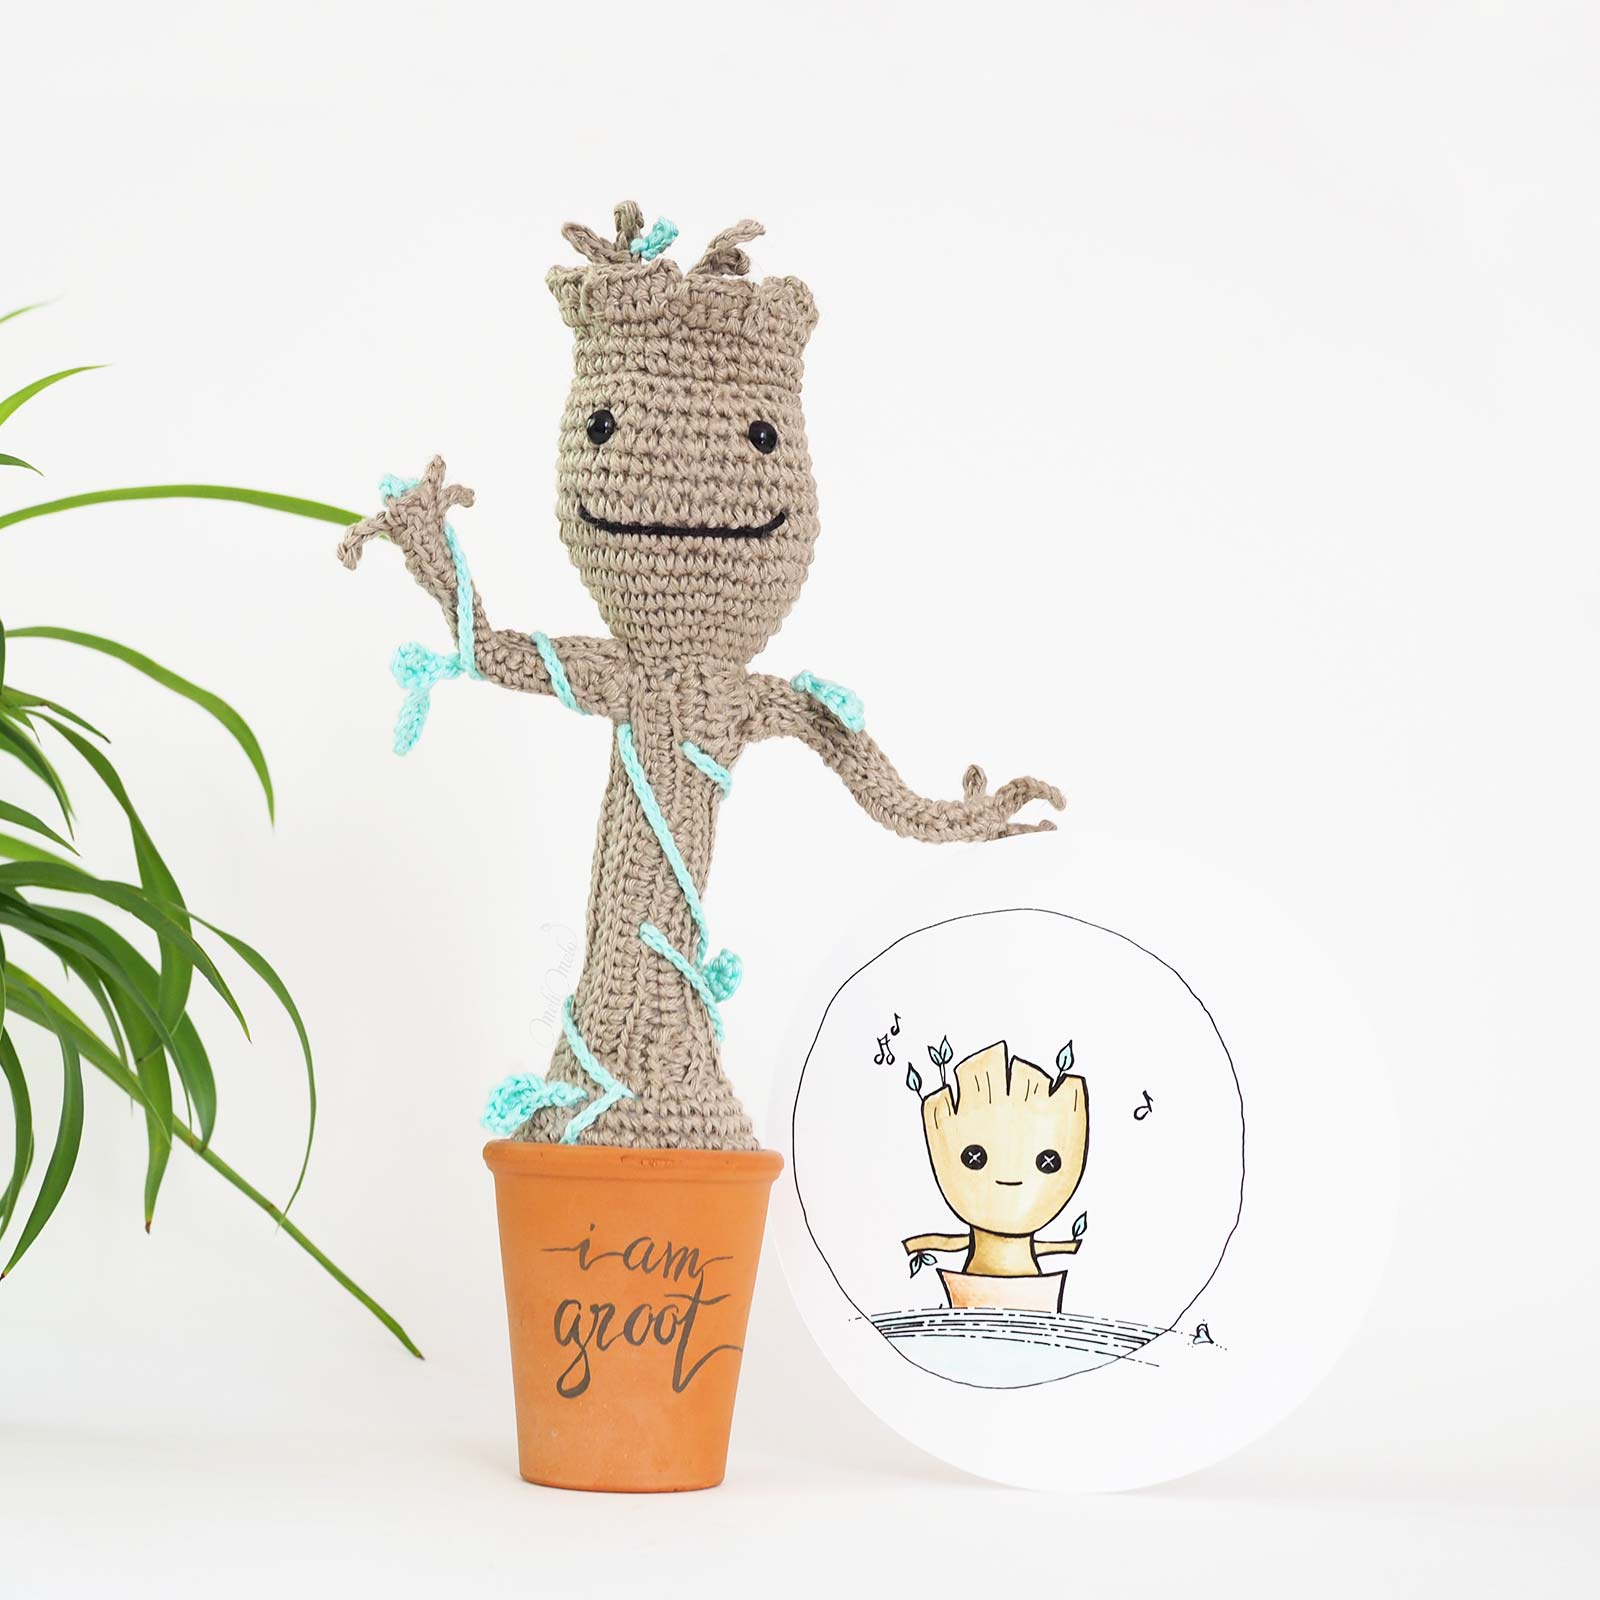 Groot dancing Guardians of the Galaxy illustration handmade watercolor laboutiquedemelimelo